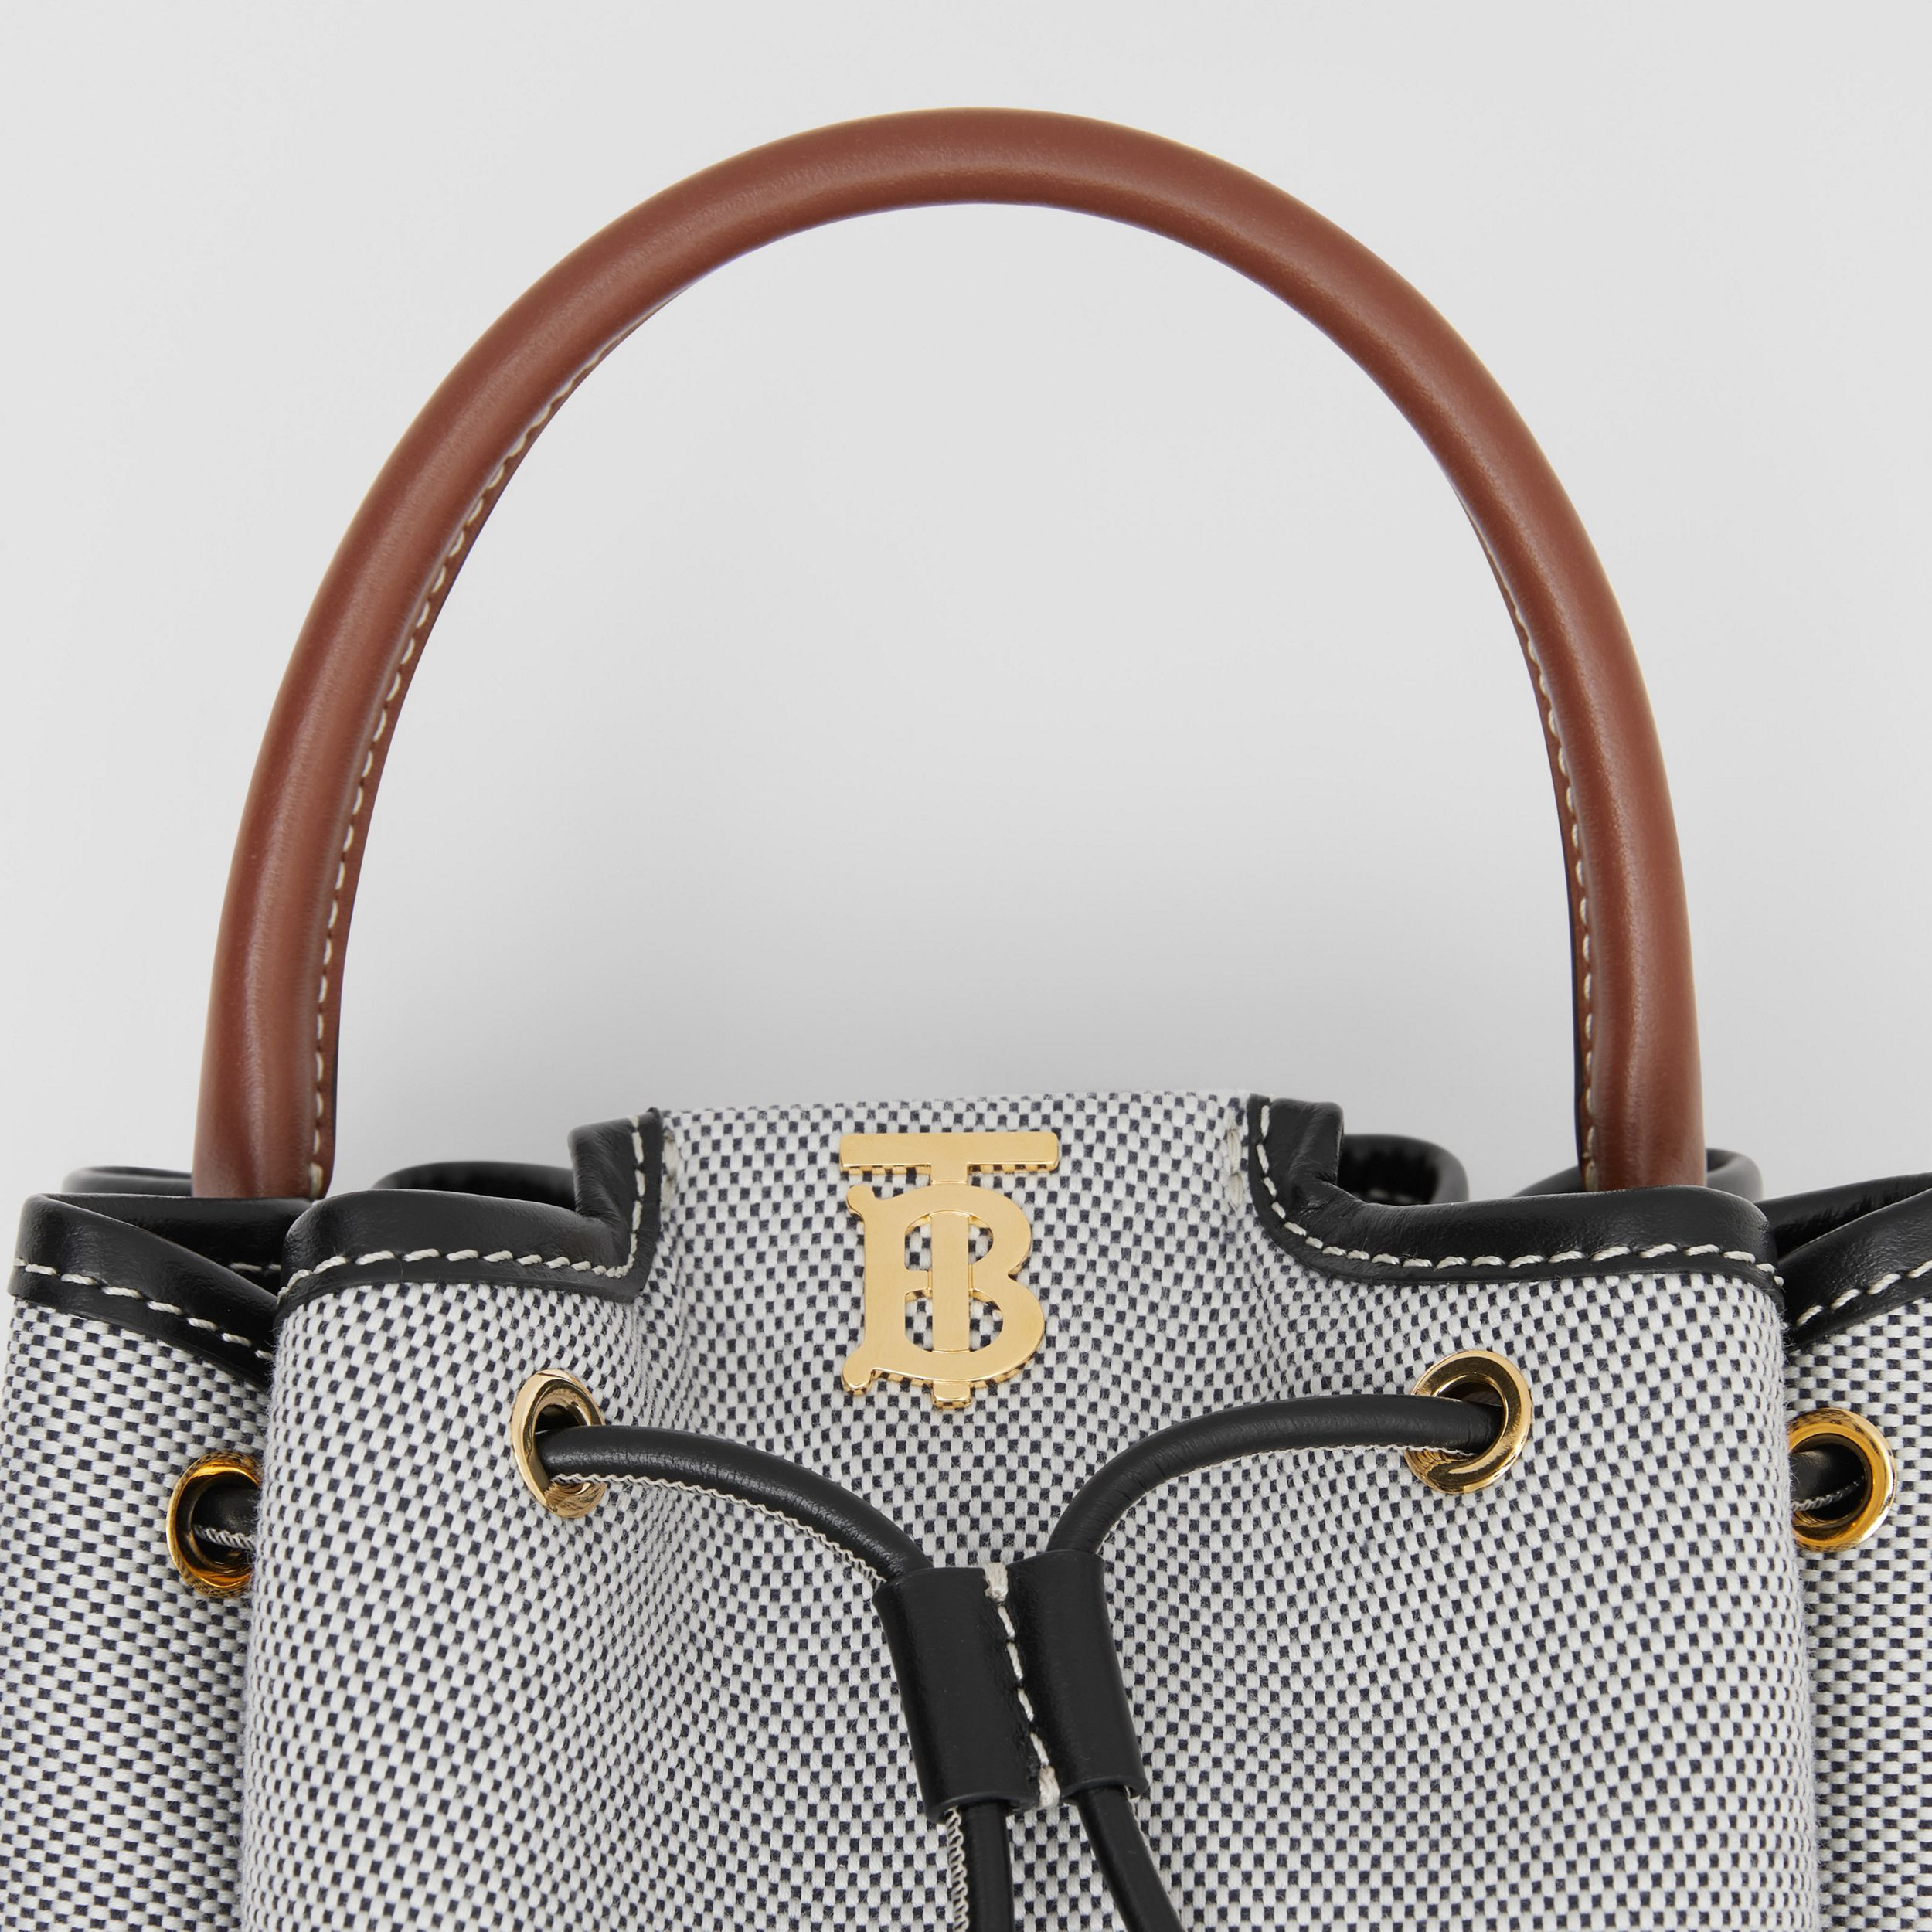 Monogram Motif Canvas and Leather Bucket Bag in Black - Women | Burberry - 2